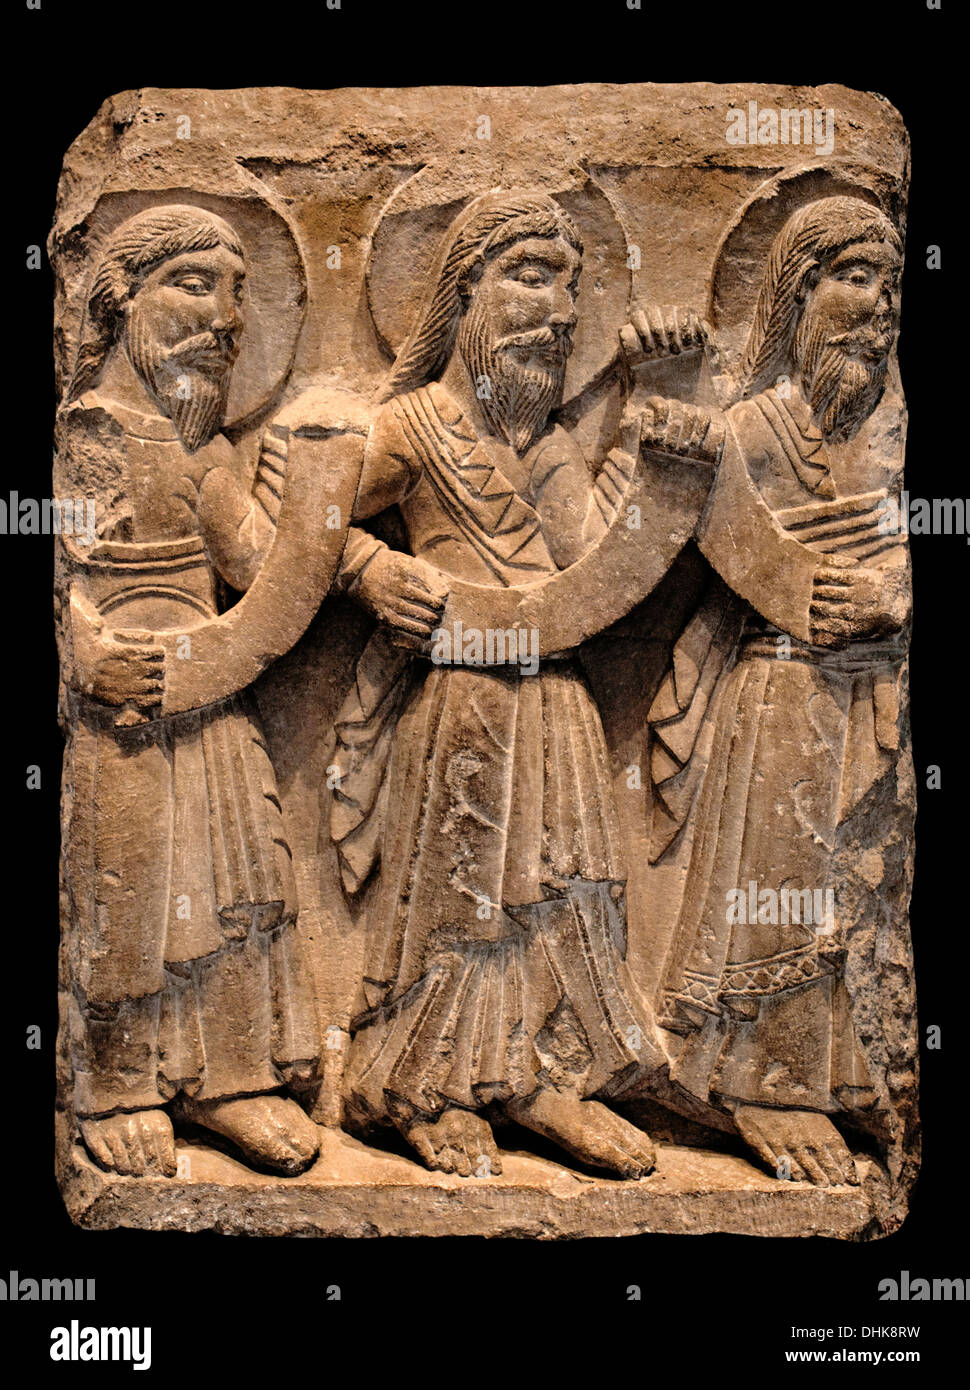 Three Prophets 1170-1180 frontage of the old cathedral of Vic  Catalonia Spain - Stock Image